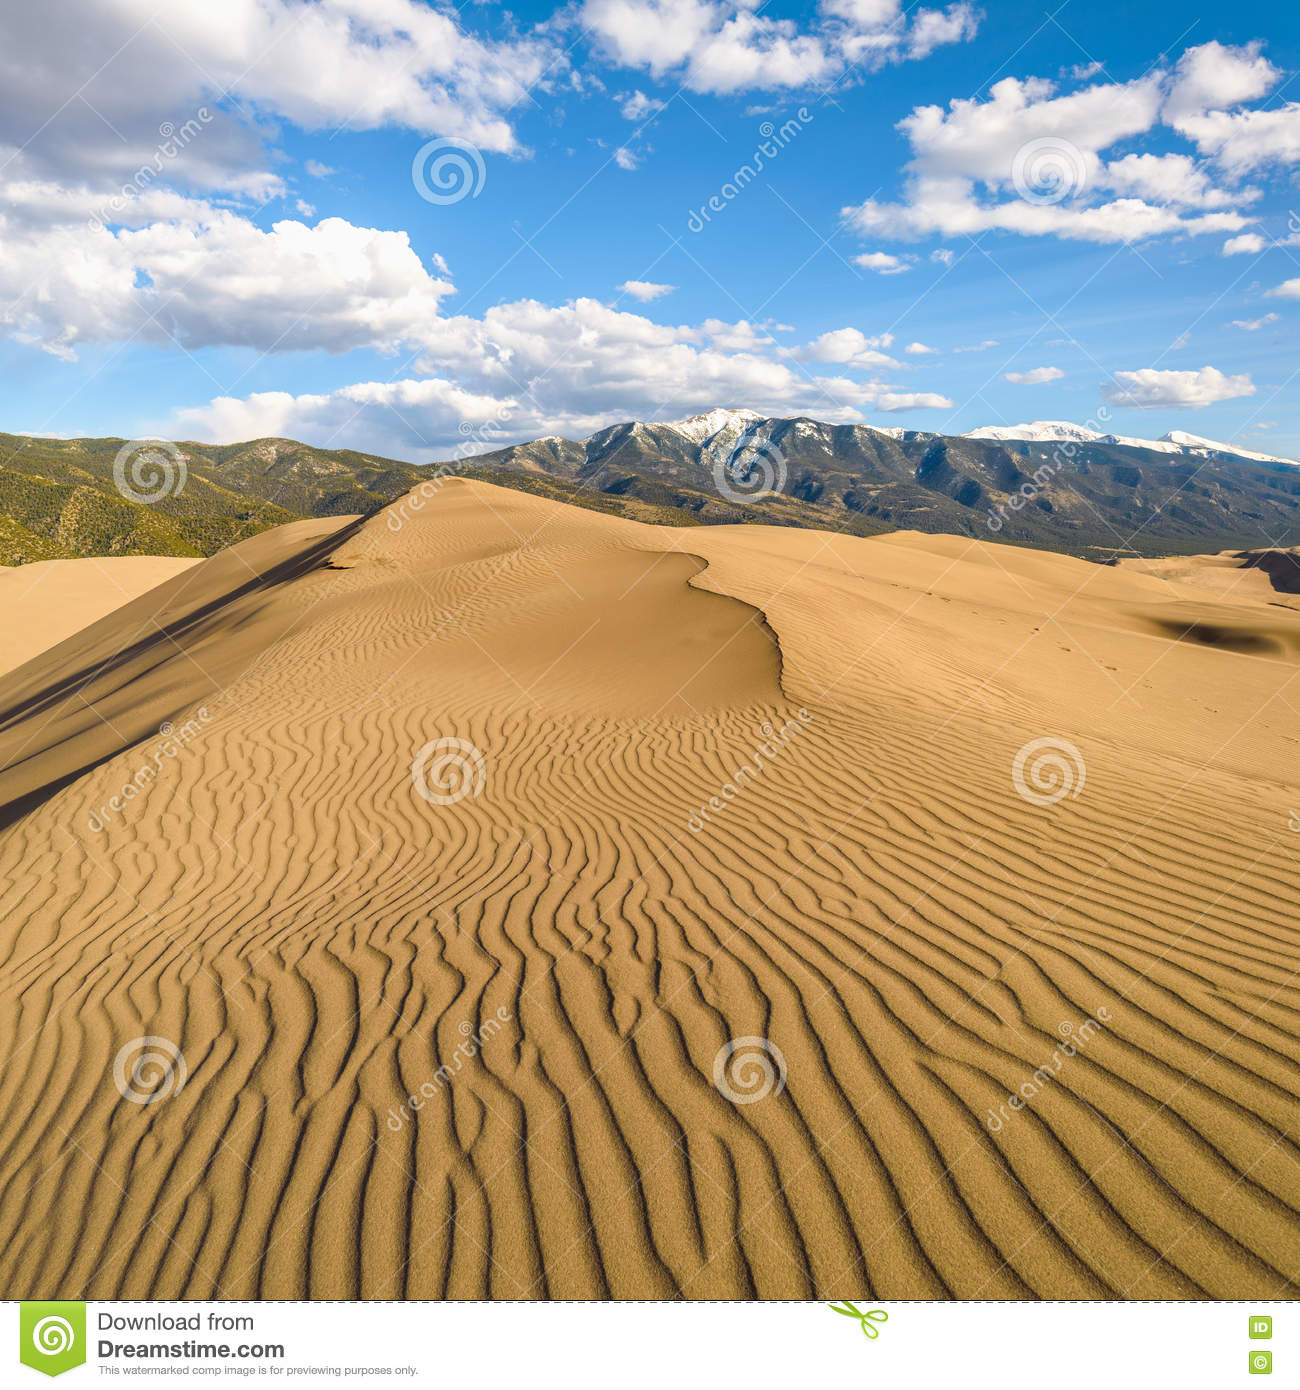 Spring Comes To Dunes >> Spring At Great Sand Dunes Square Stock Image Image Of